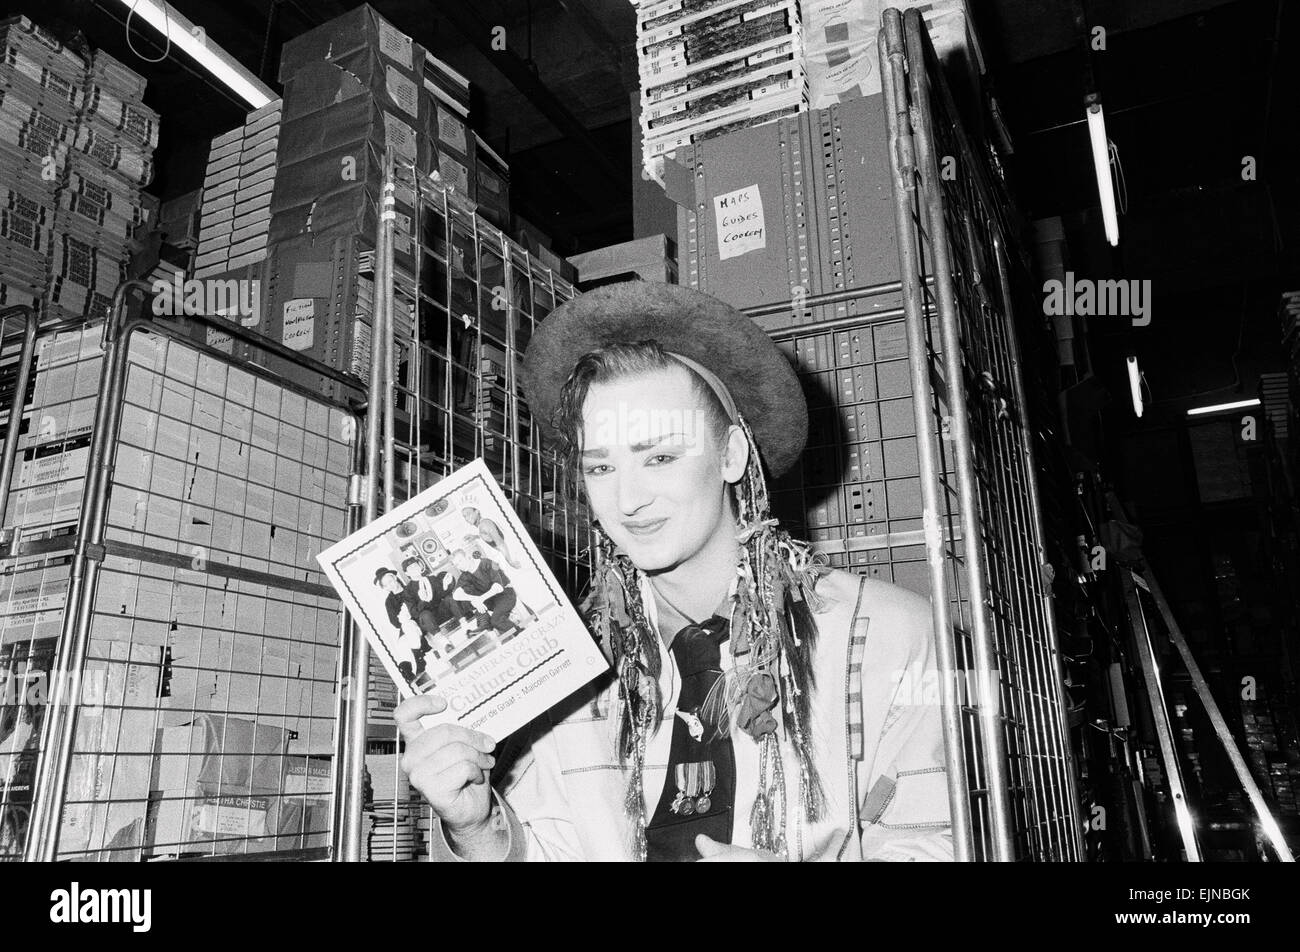 Boy George makes a publicity appearance at a bookshop in Brent Cross, London. 22nd September 1983. - Stock Image